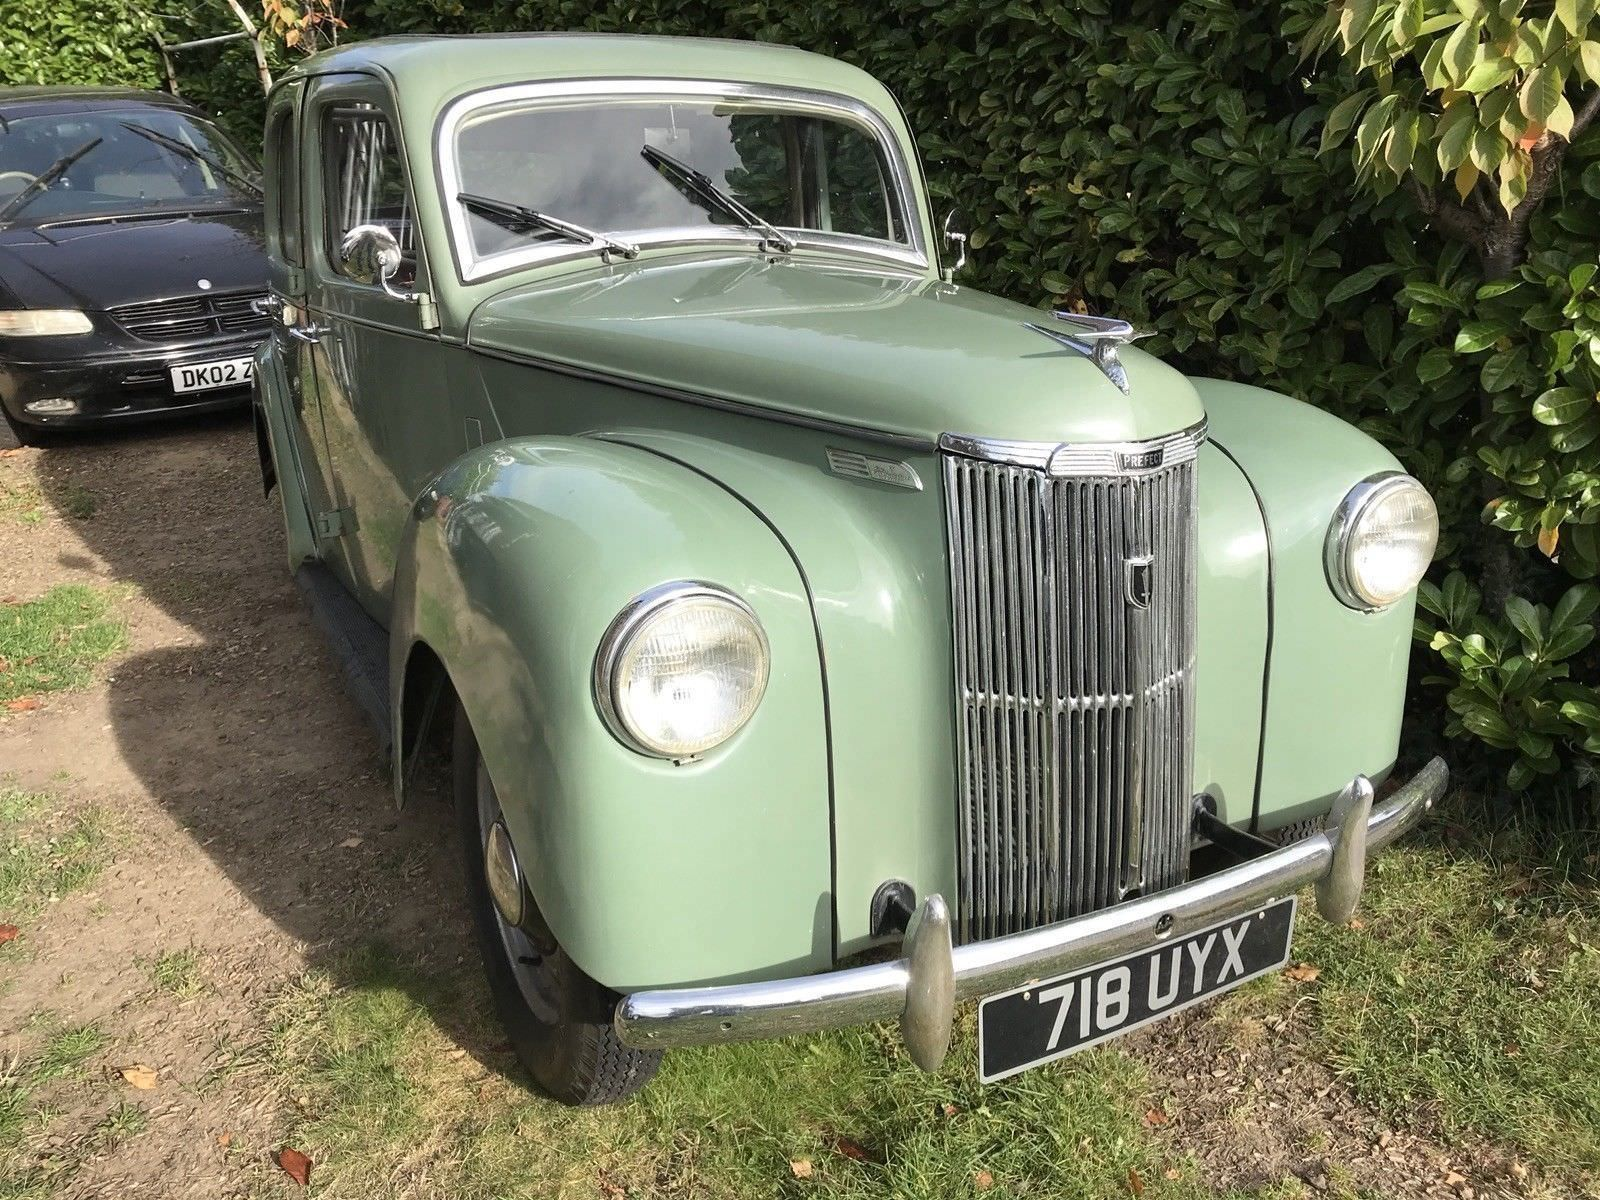 Ford Prefect 1953 E493A 1172cc vintage Car Historic Road Tax ,lots